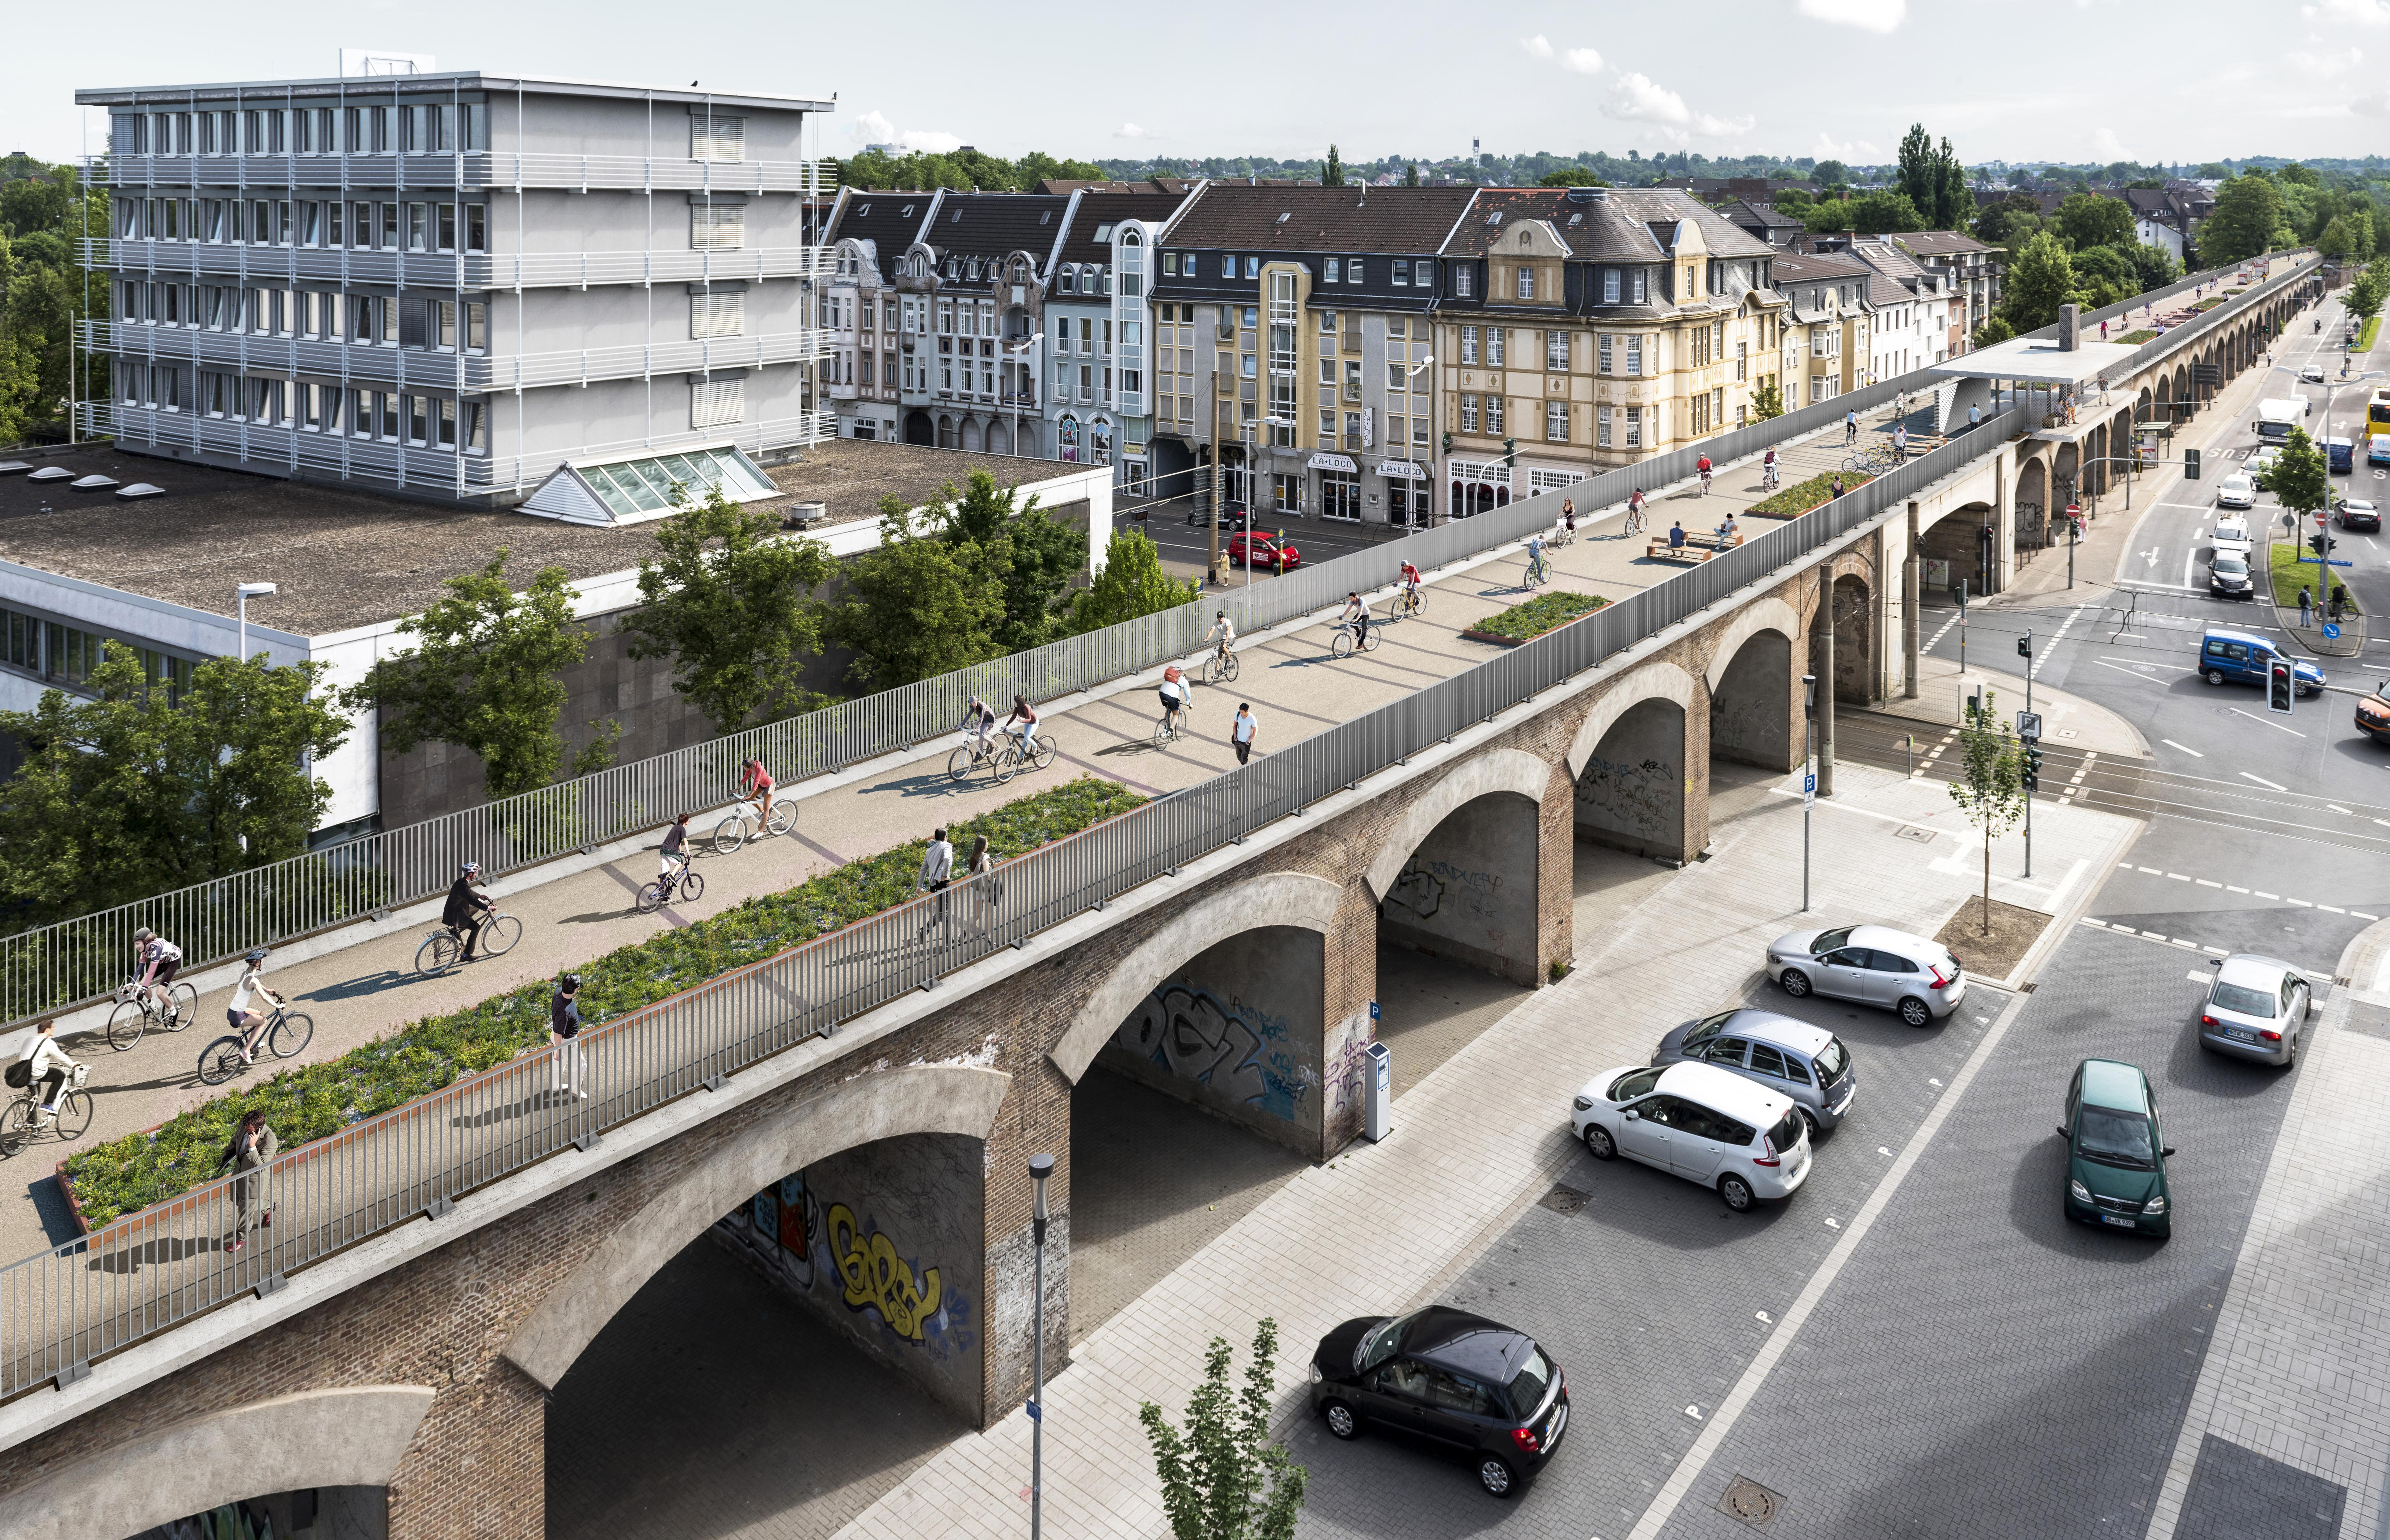 Stadtviadukt in Mülheim. Illustration: P3/AGFS